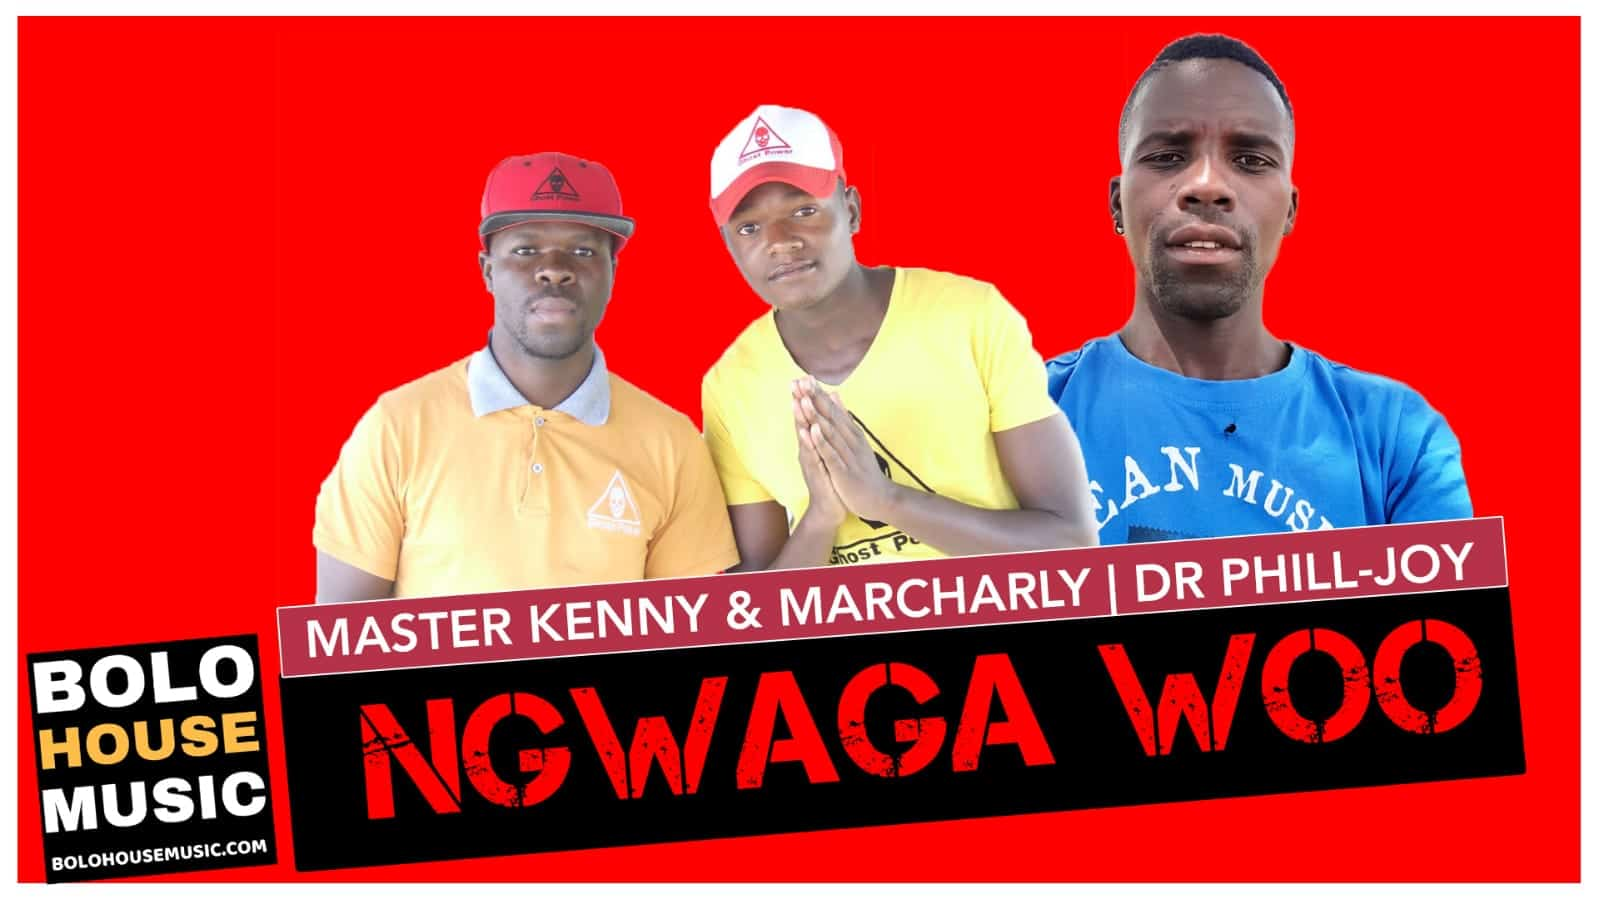 Master Kenny x Macharly & Dr PhillJoy - Ngwaga Woo